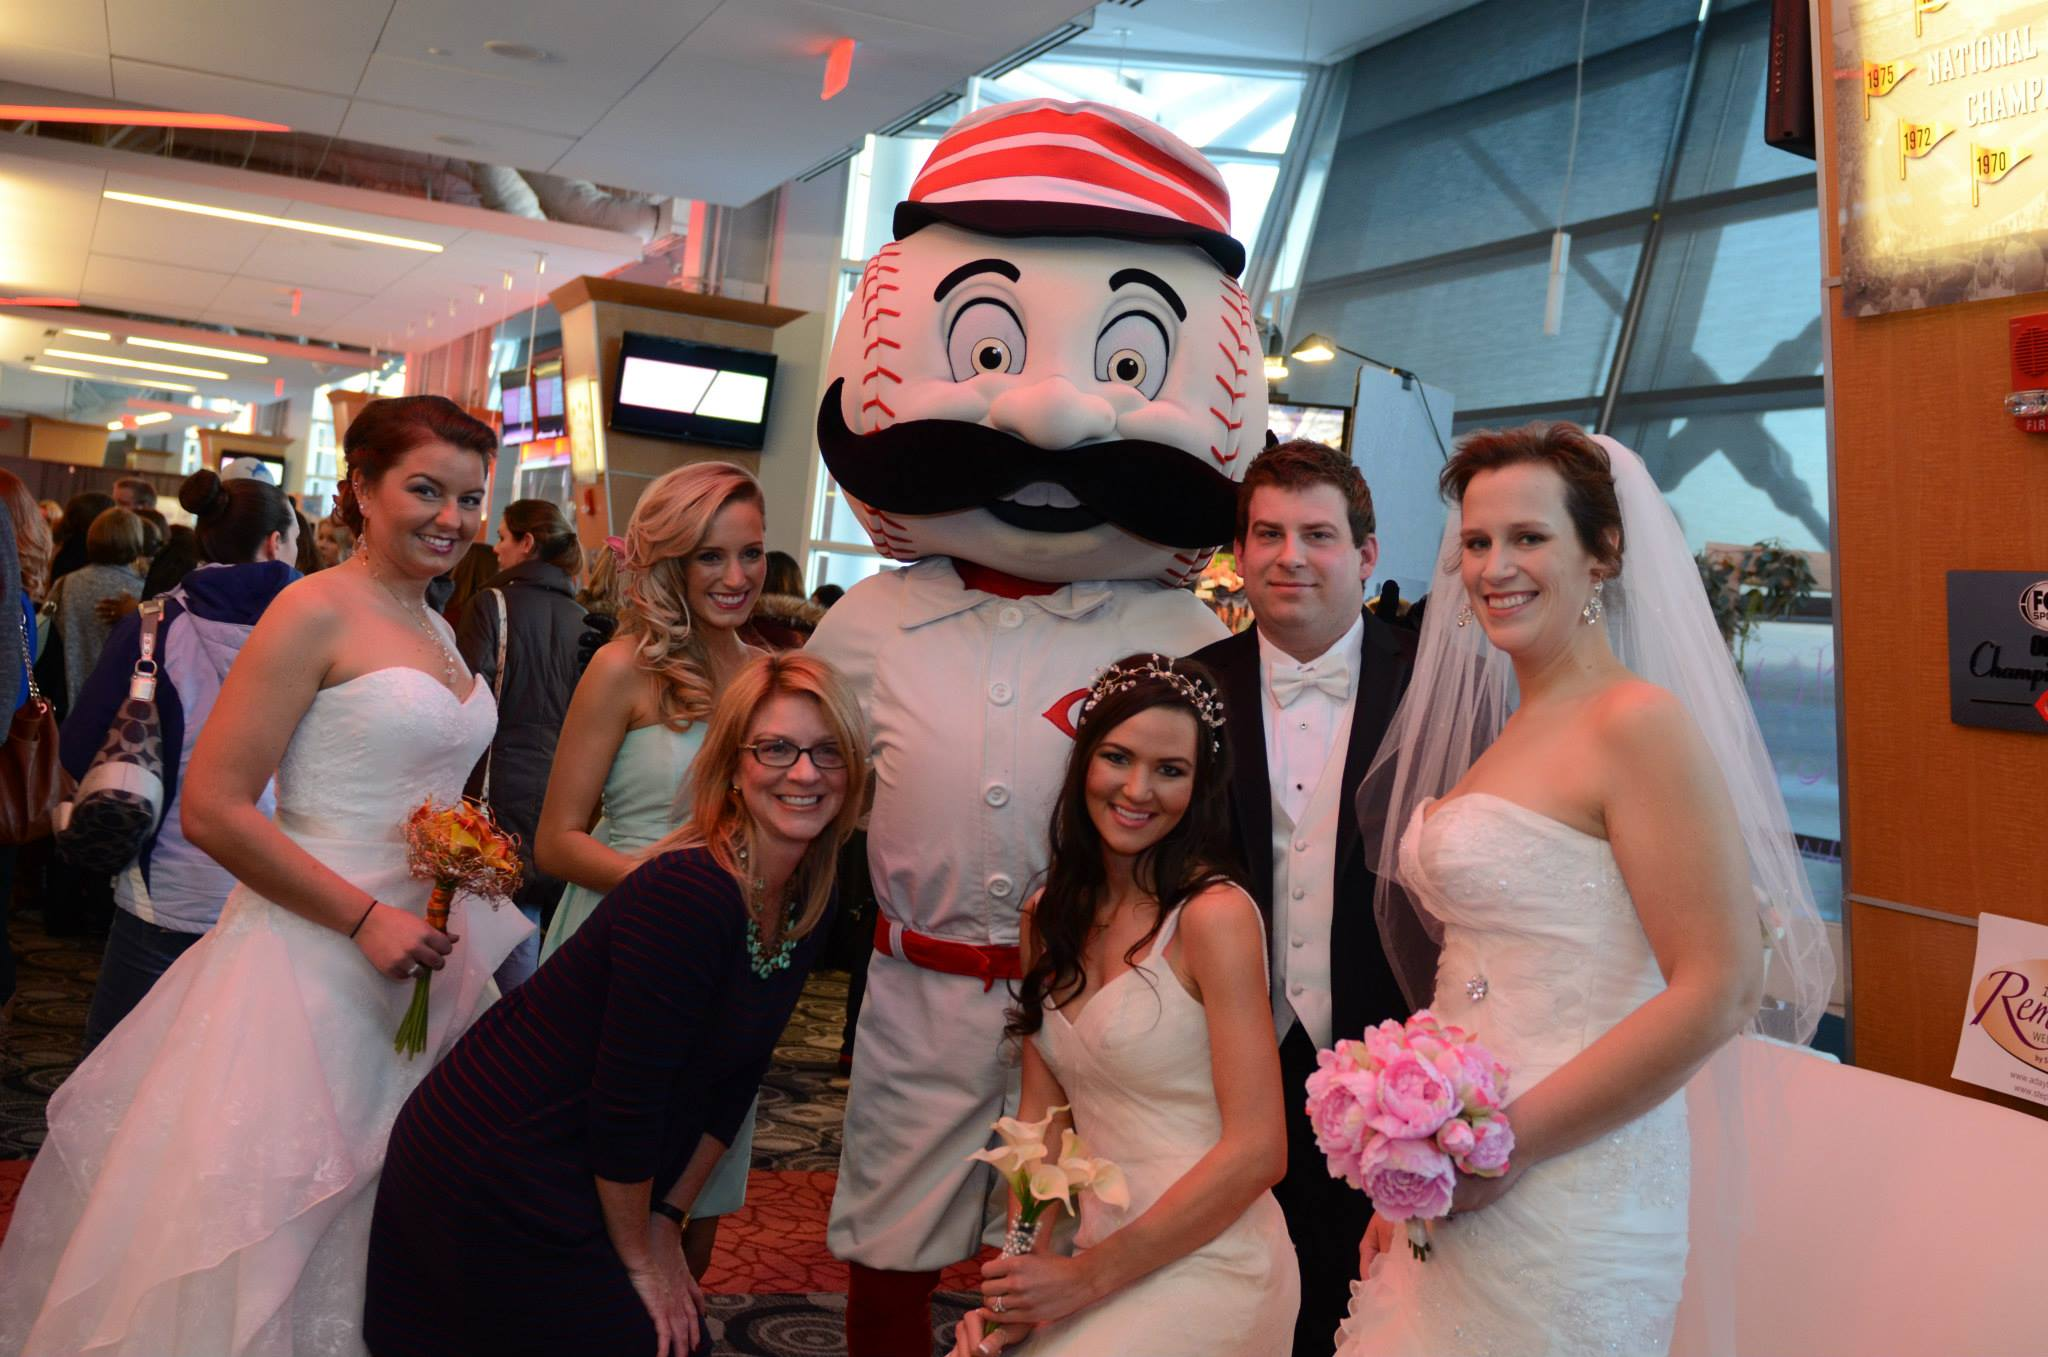 A Bride's Mafia will be hosting its annual Afterhours Bridal Show this March 10 at Great American Ballpark.